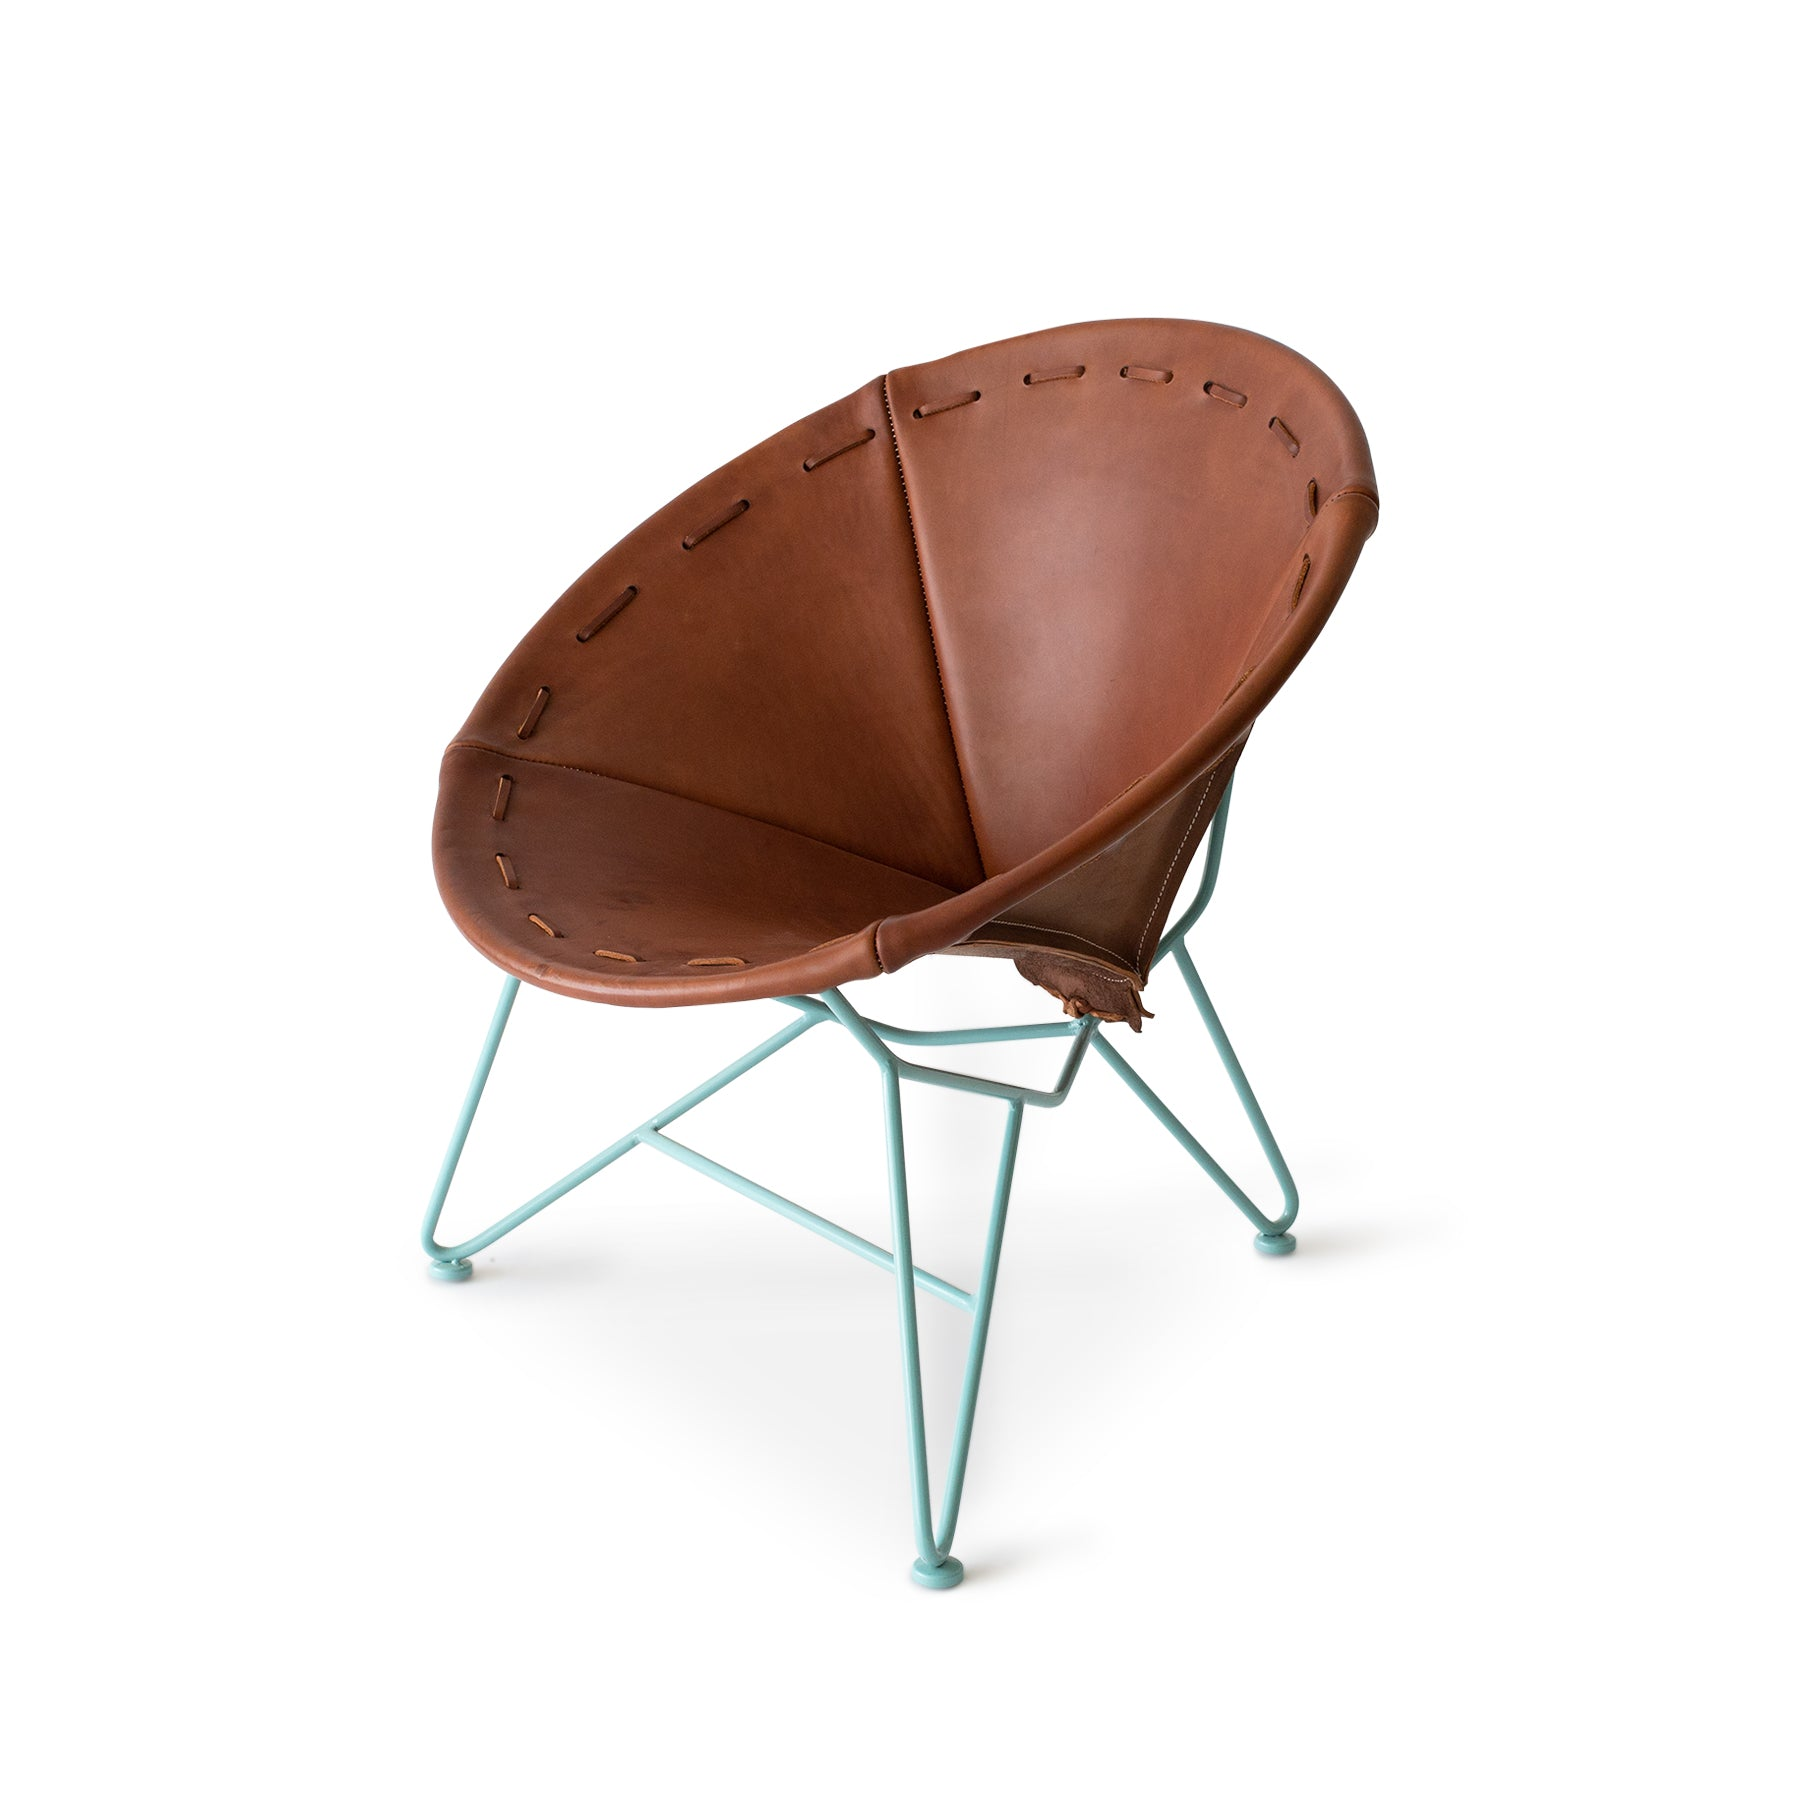 Saddle Leather Round Chair in Chocolate with Aqua Base Zoom Image 1